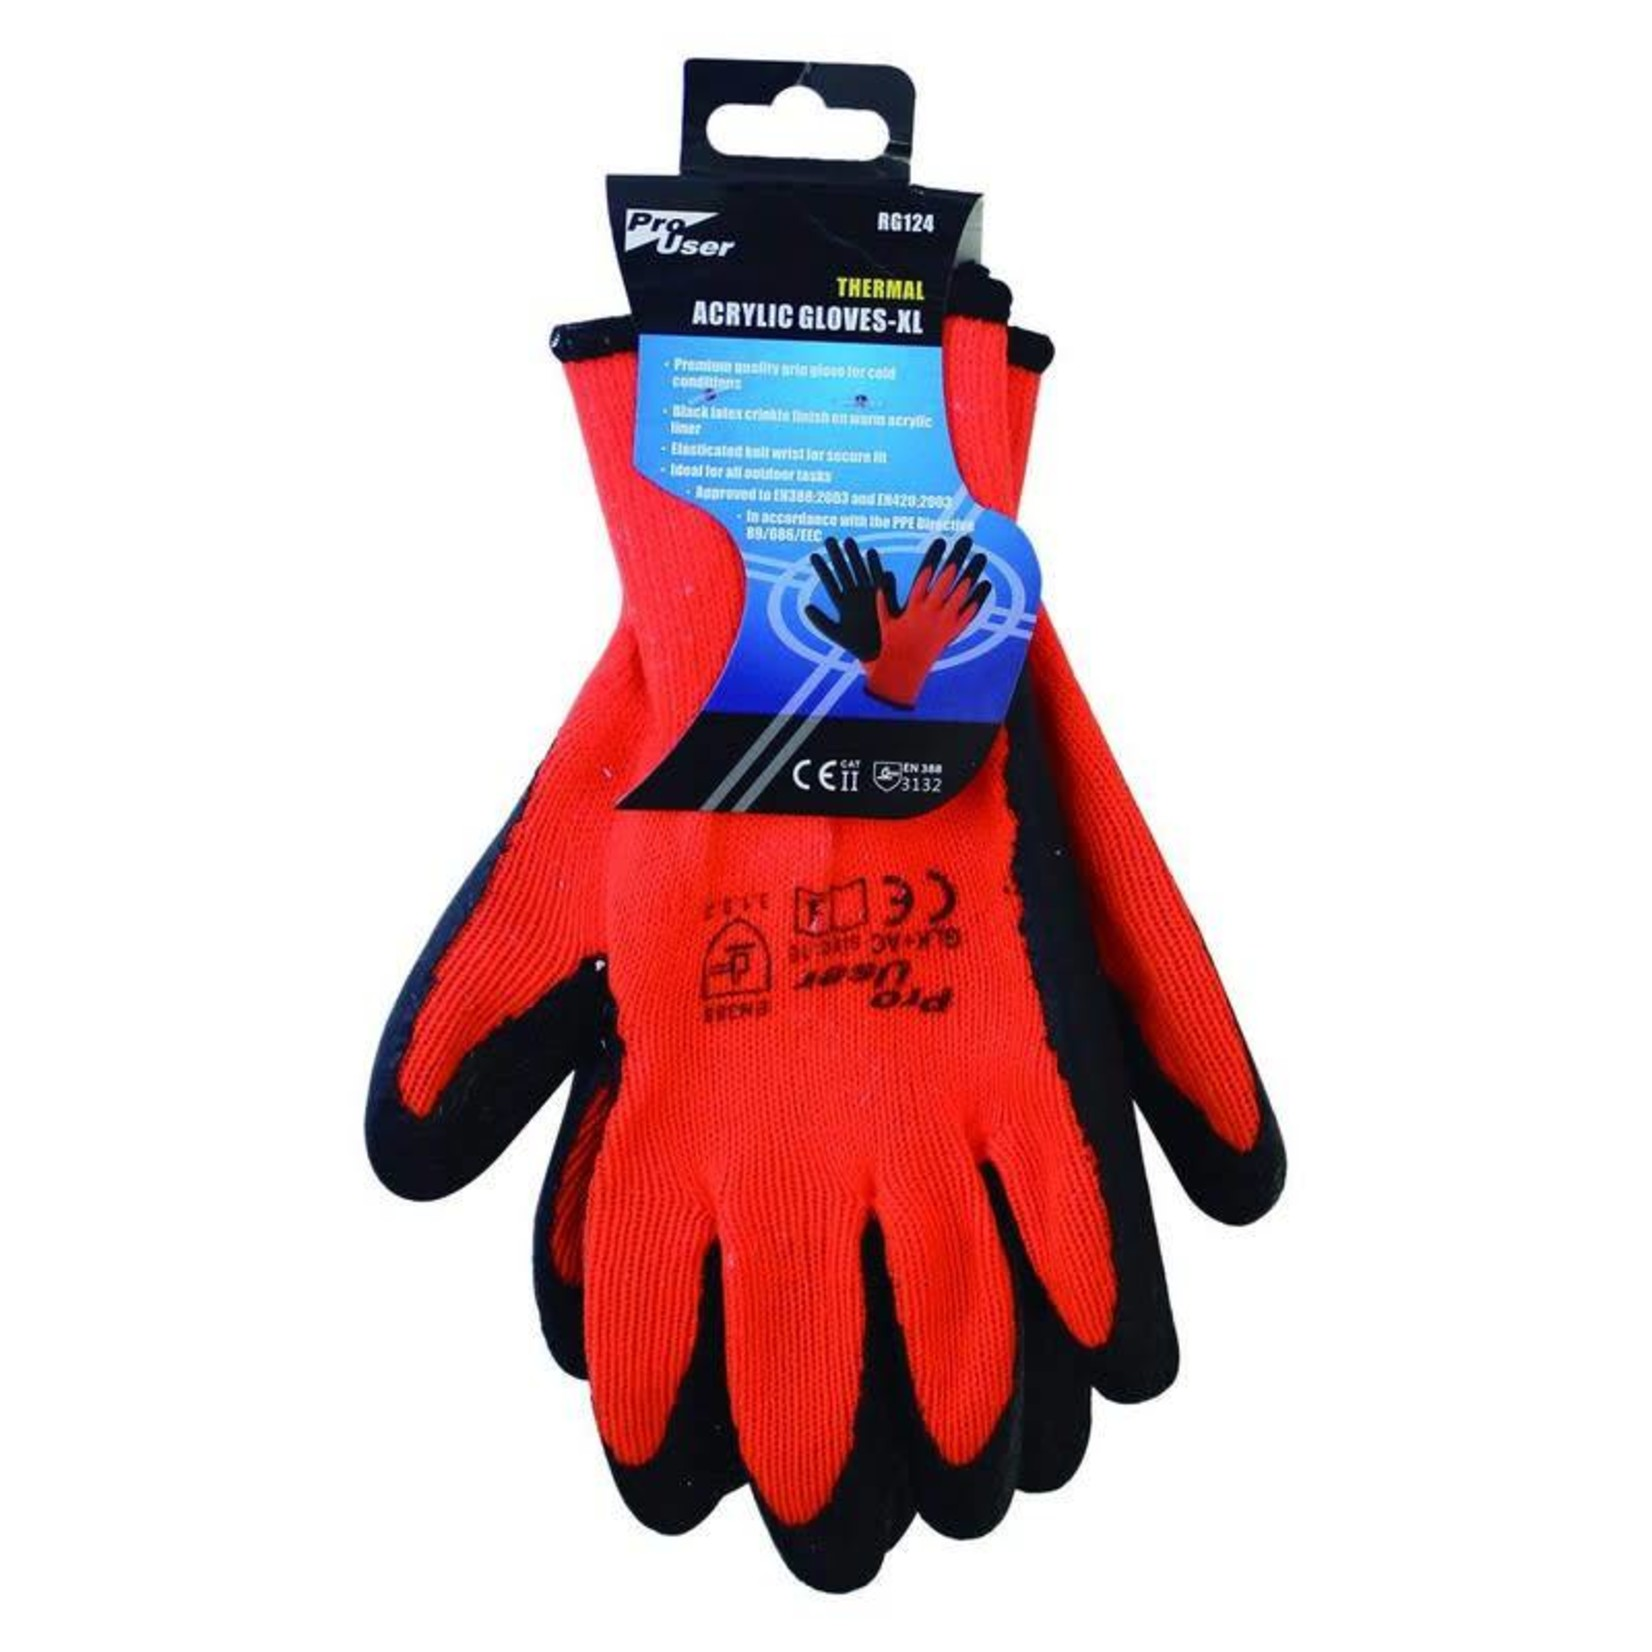 PRO USER THERMAL ACRYLIC GLOVES EXTRA LARGE